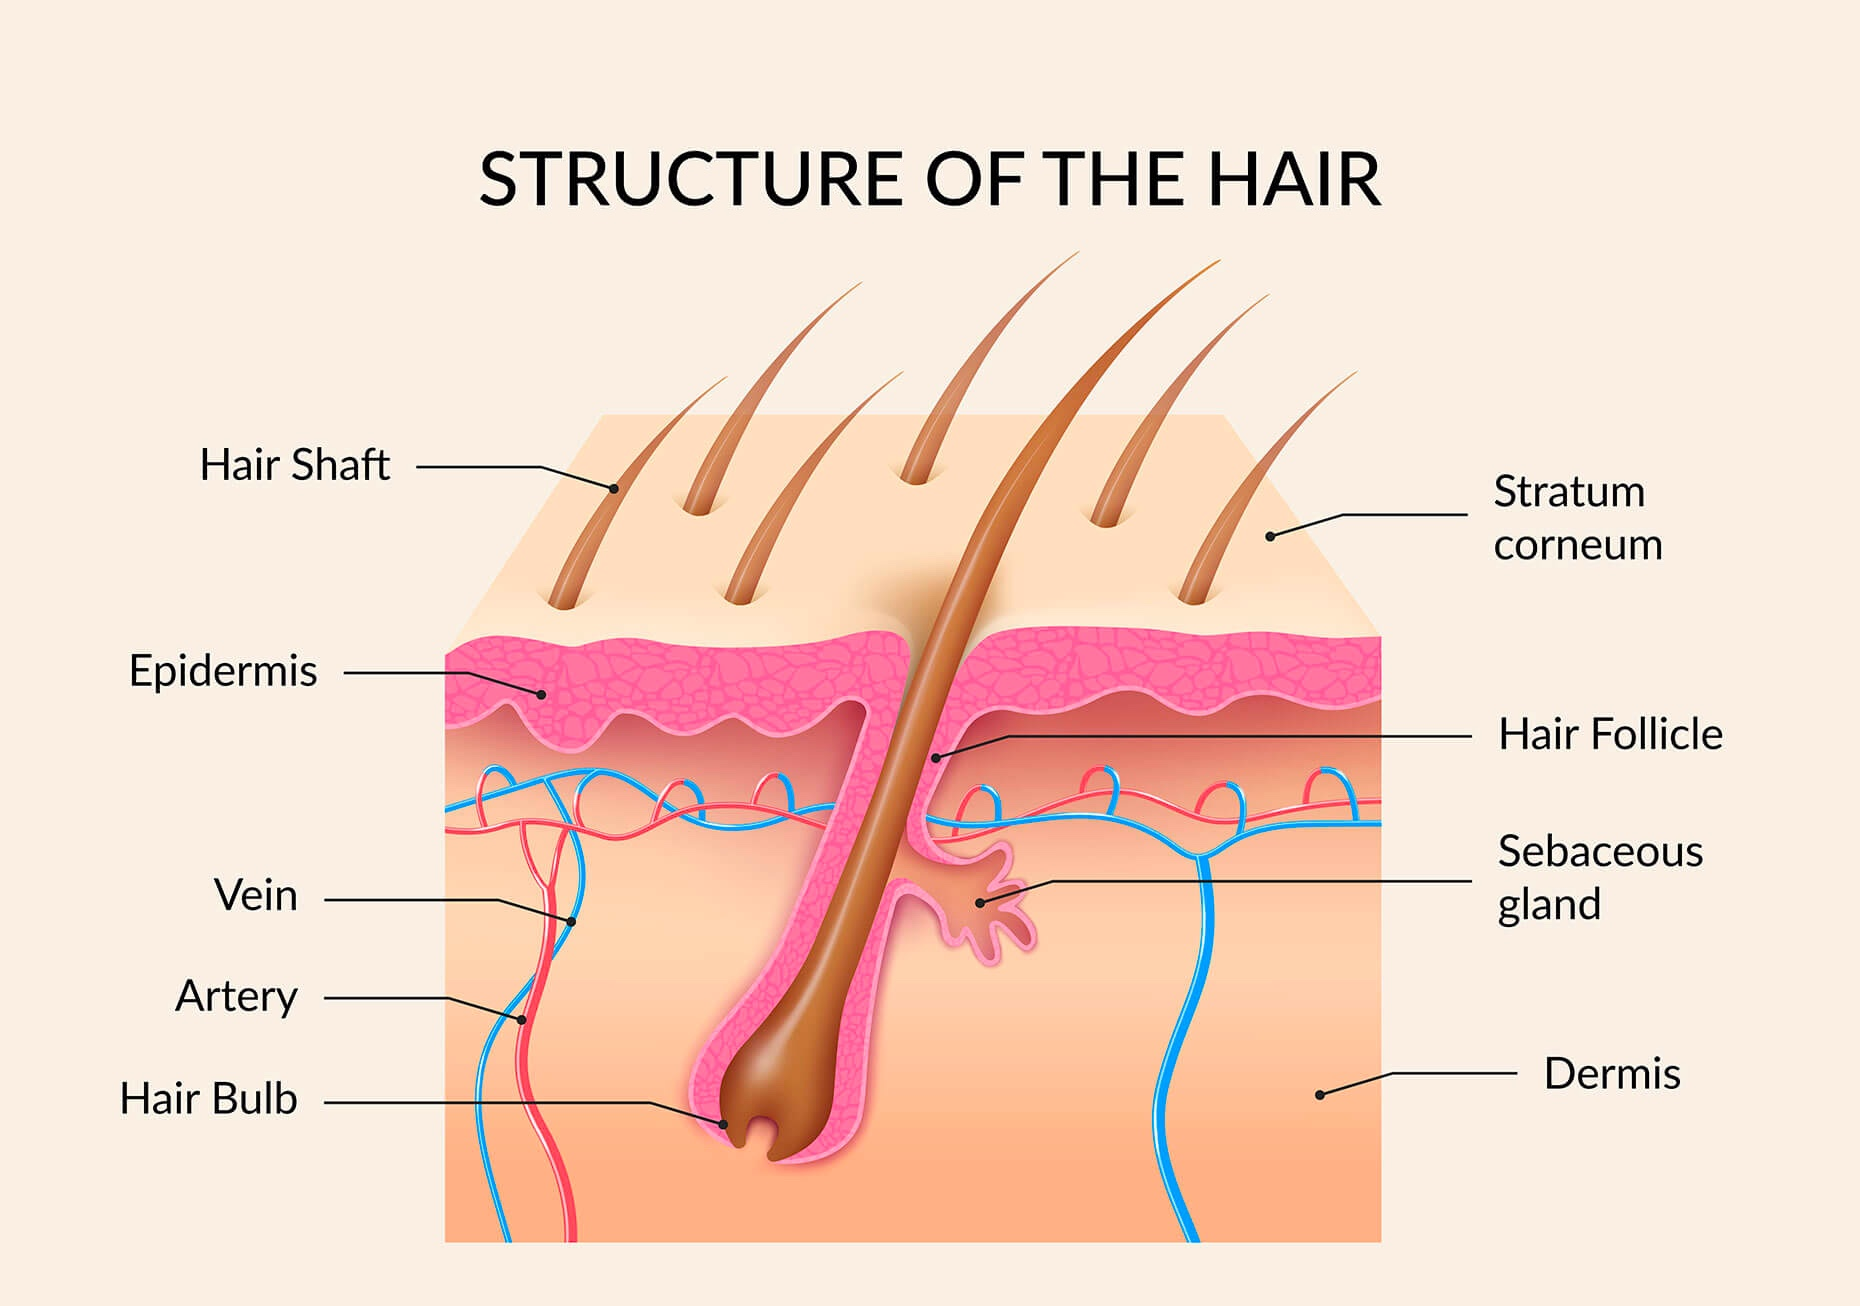 A diagram of the structure of hair, showing examples of the hair shafts, bulbs, and follicles, stratum corneum, epidermis, dermis, veins, arteries, and sebaceous glands.